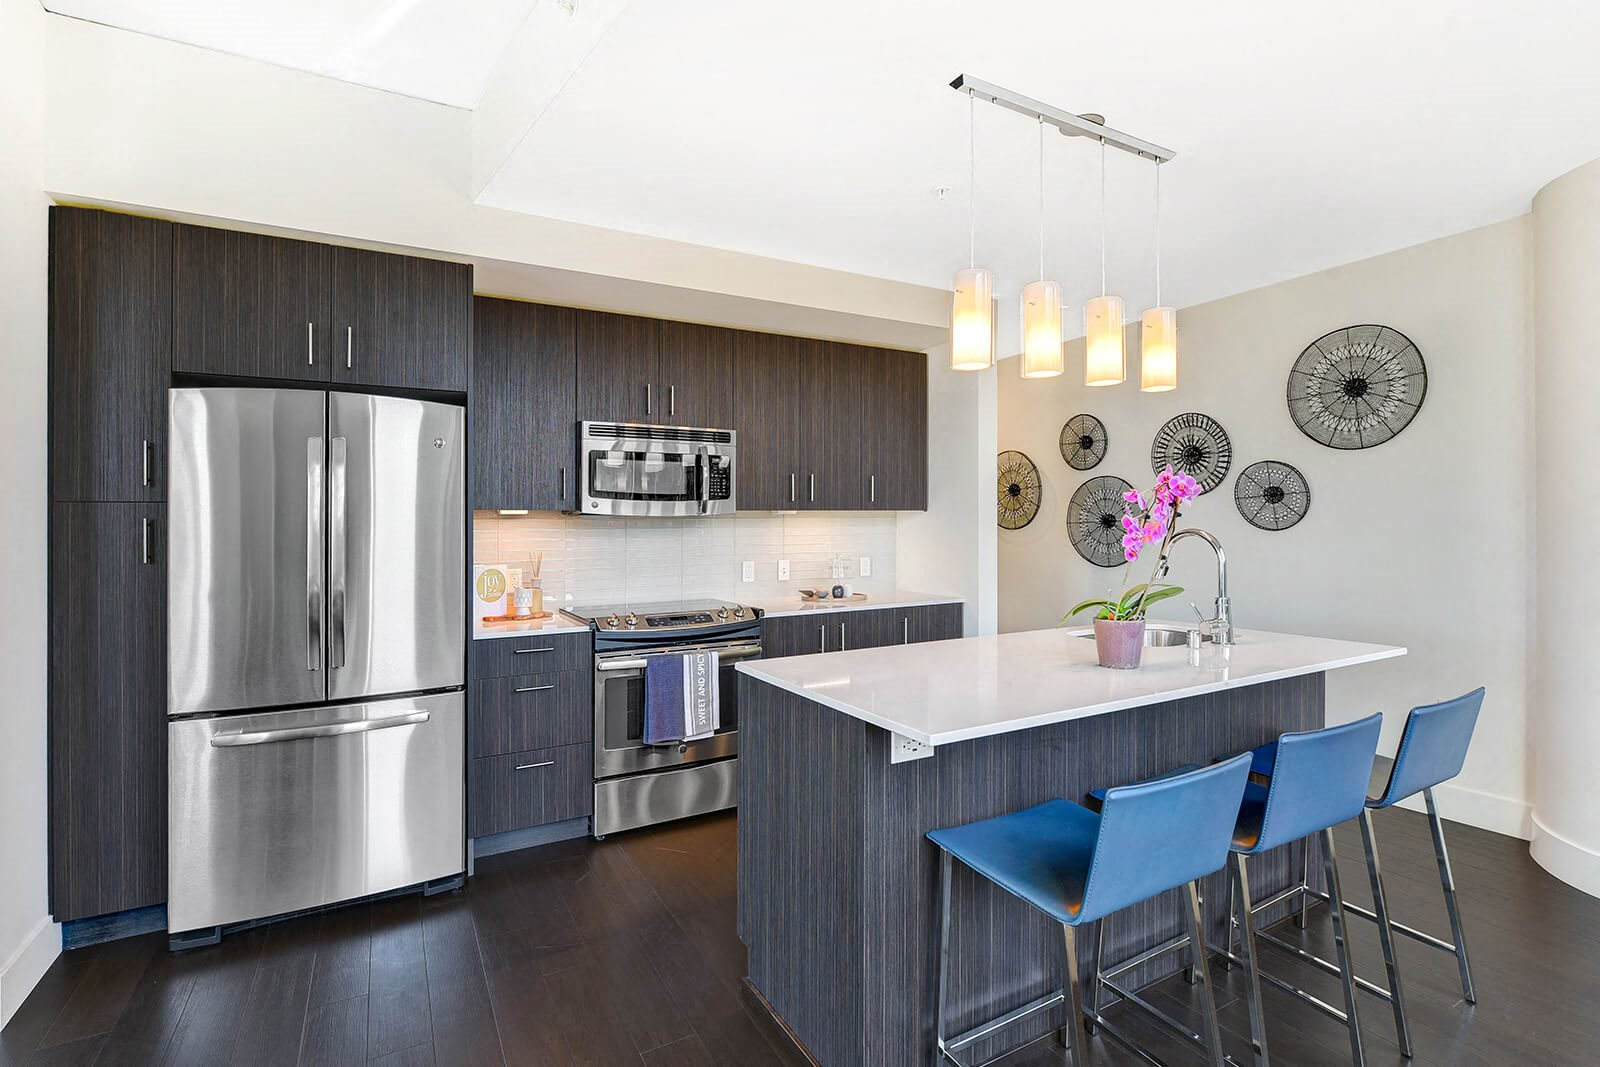 French-Door Refrigerator, Kitchen Islands And Quartz Countertops In Chef-Inspired Kitchens at Cirrus, 2030 8th Avenue, Seattle